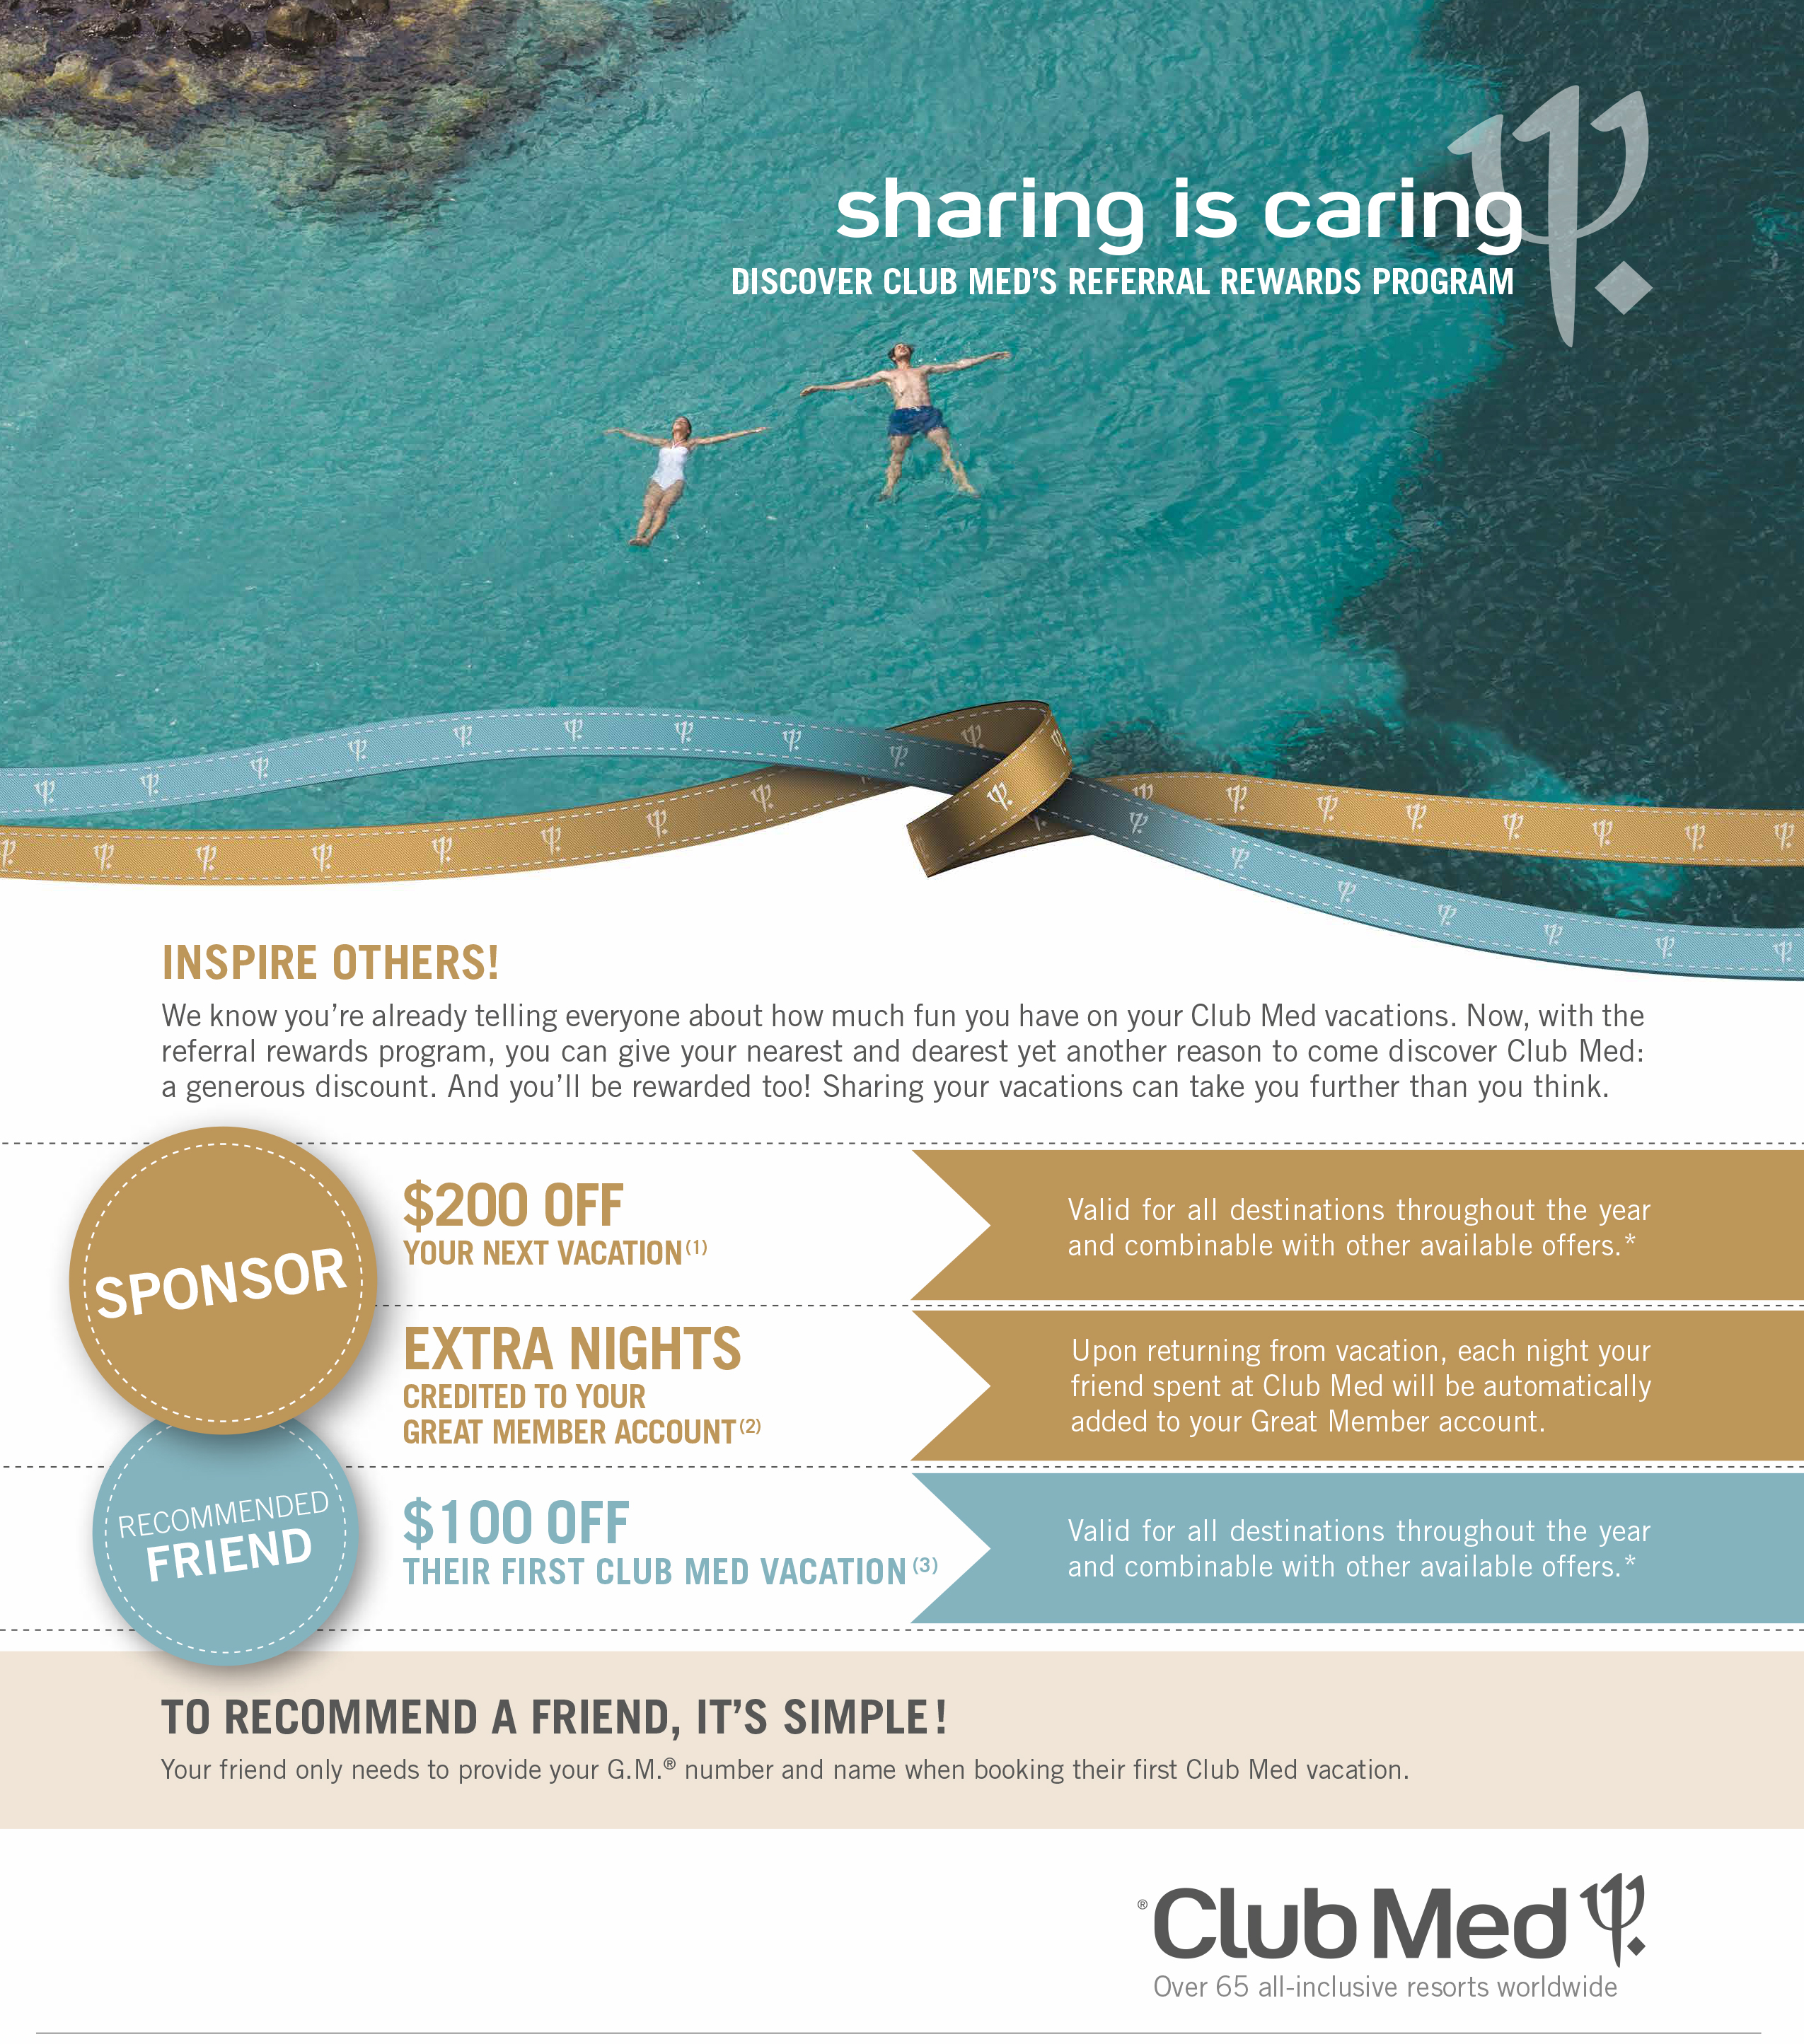 Club Med Referral Rewards